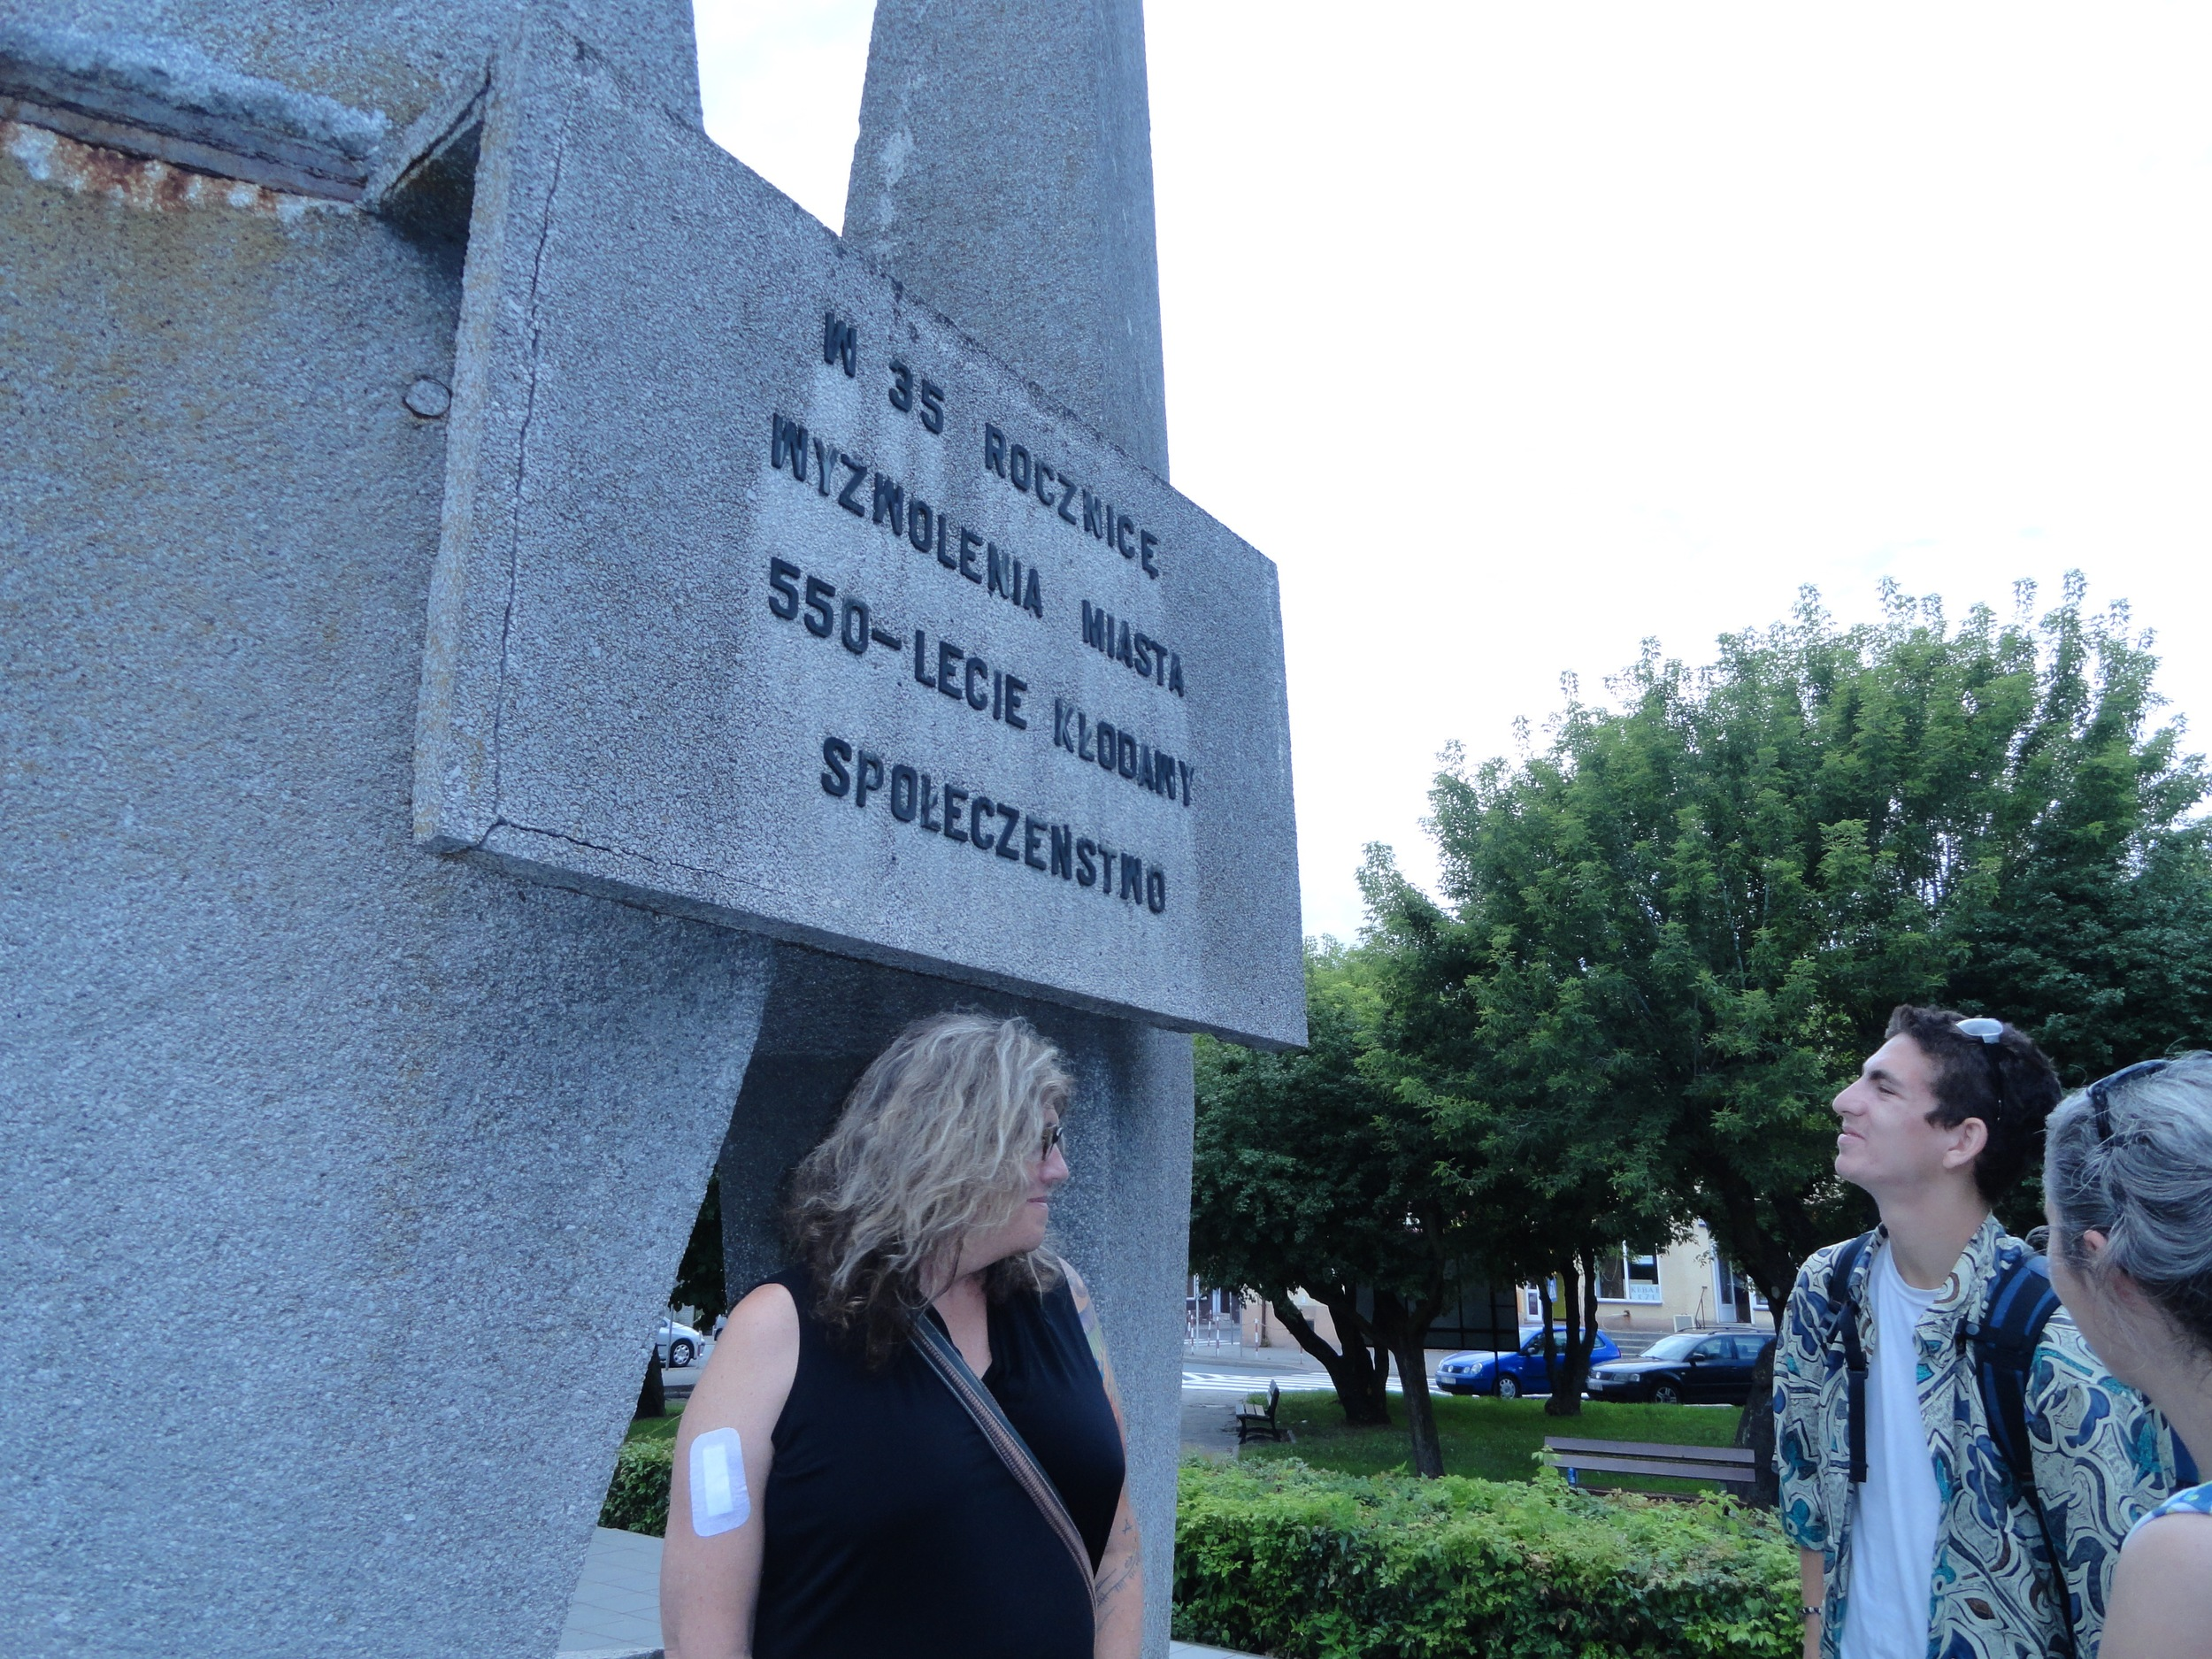 Back side of WWII memorial. Susan Stryker, Oscar Klausner and Monika Rogoska-Stangret. The text says the statue memorializes the 35th anniversary of WWII and the 550th anniversary of the founding of the town!